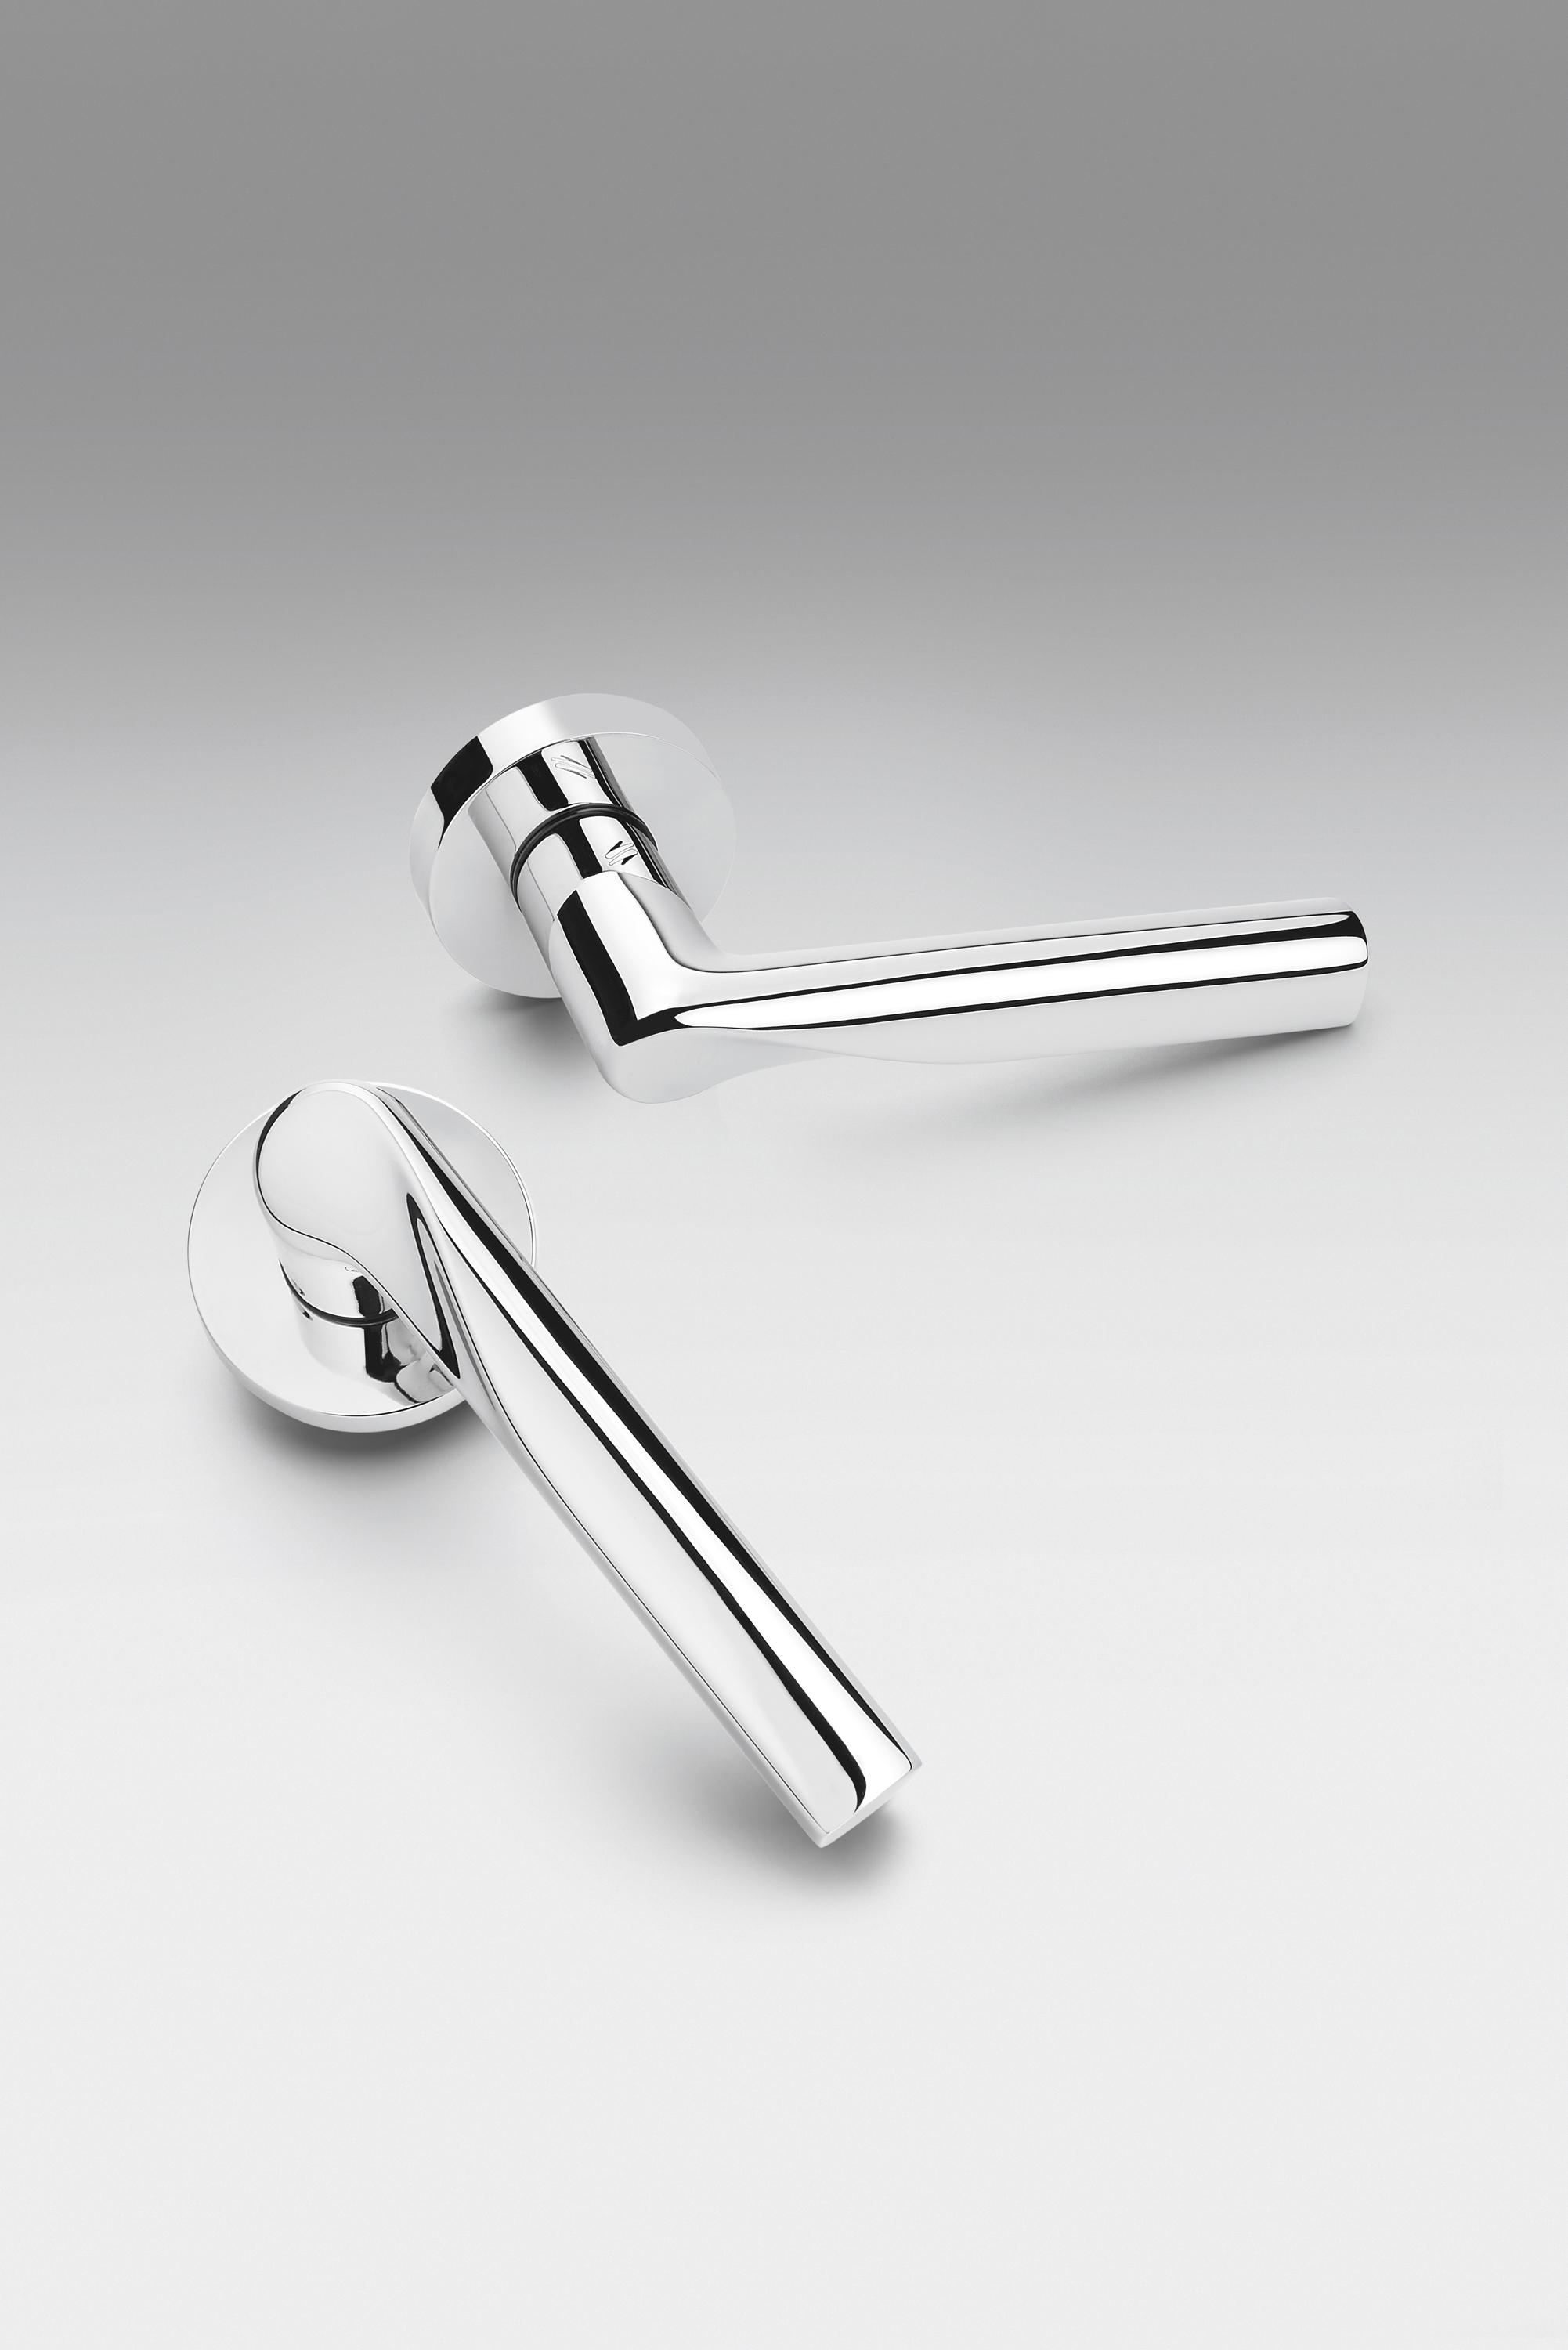 LIBRA - Handle sets from COLOMBO DESIGN   Architonic